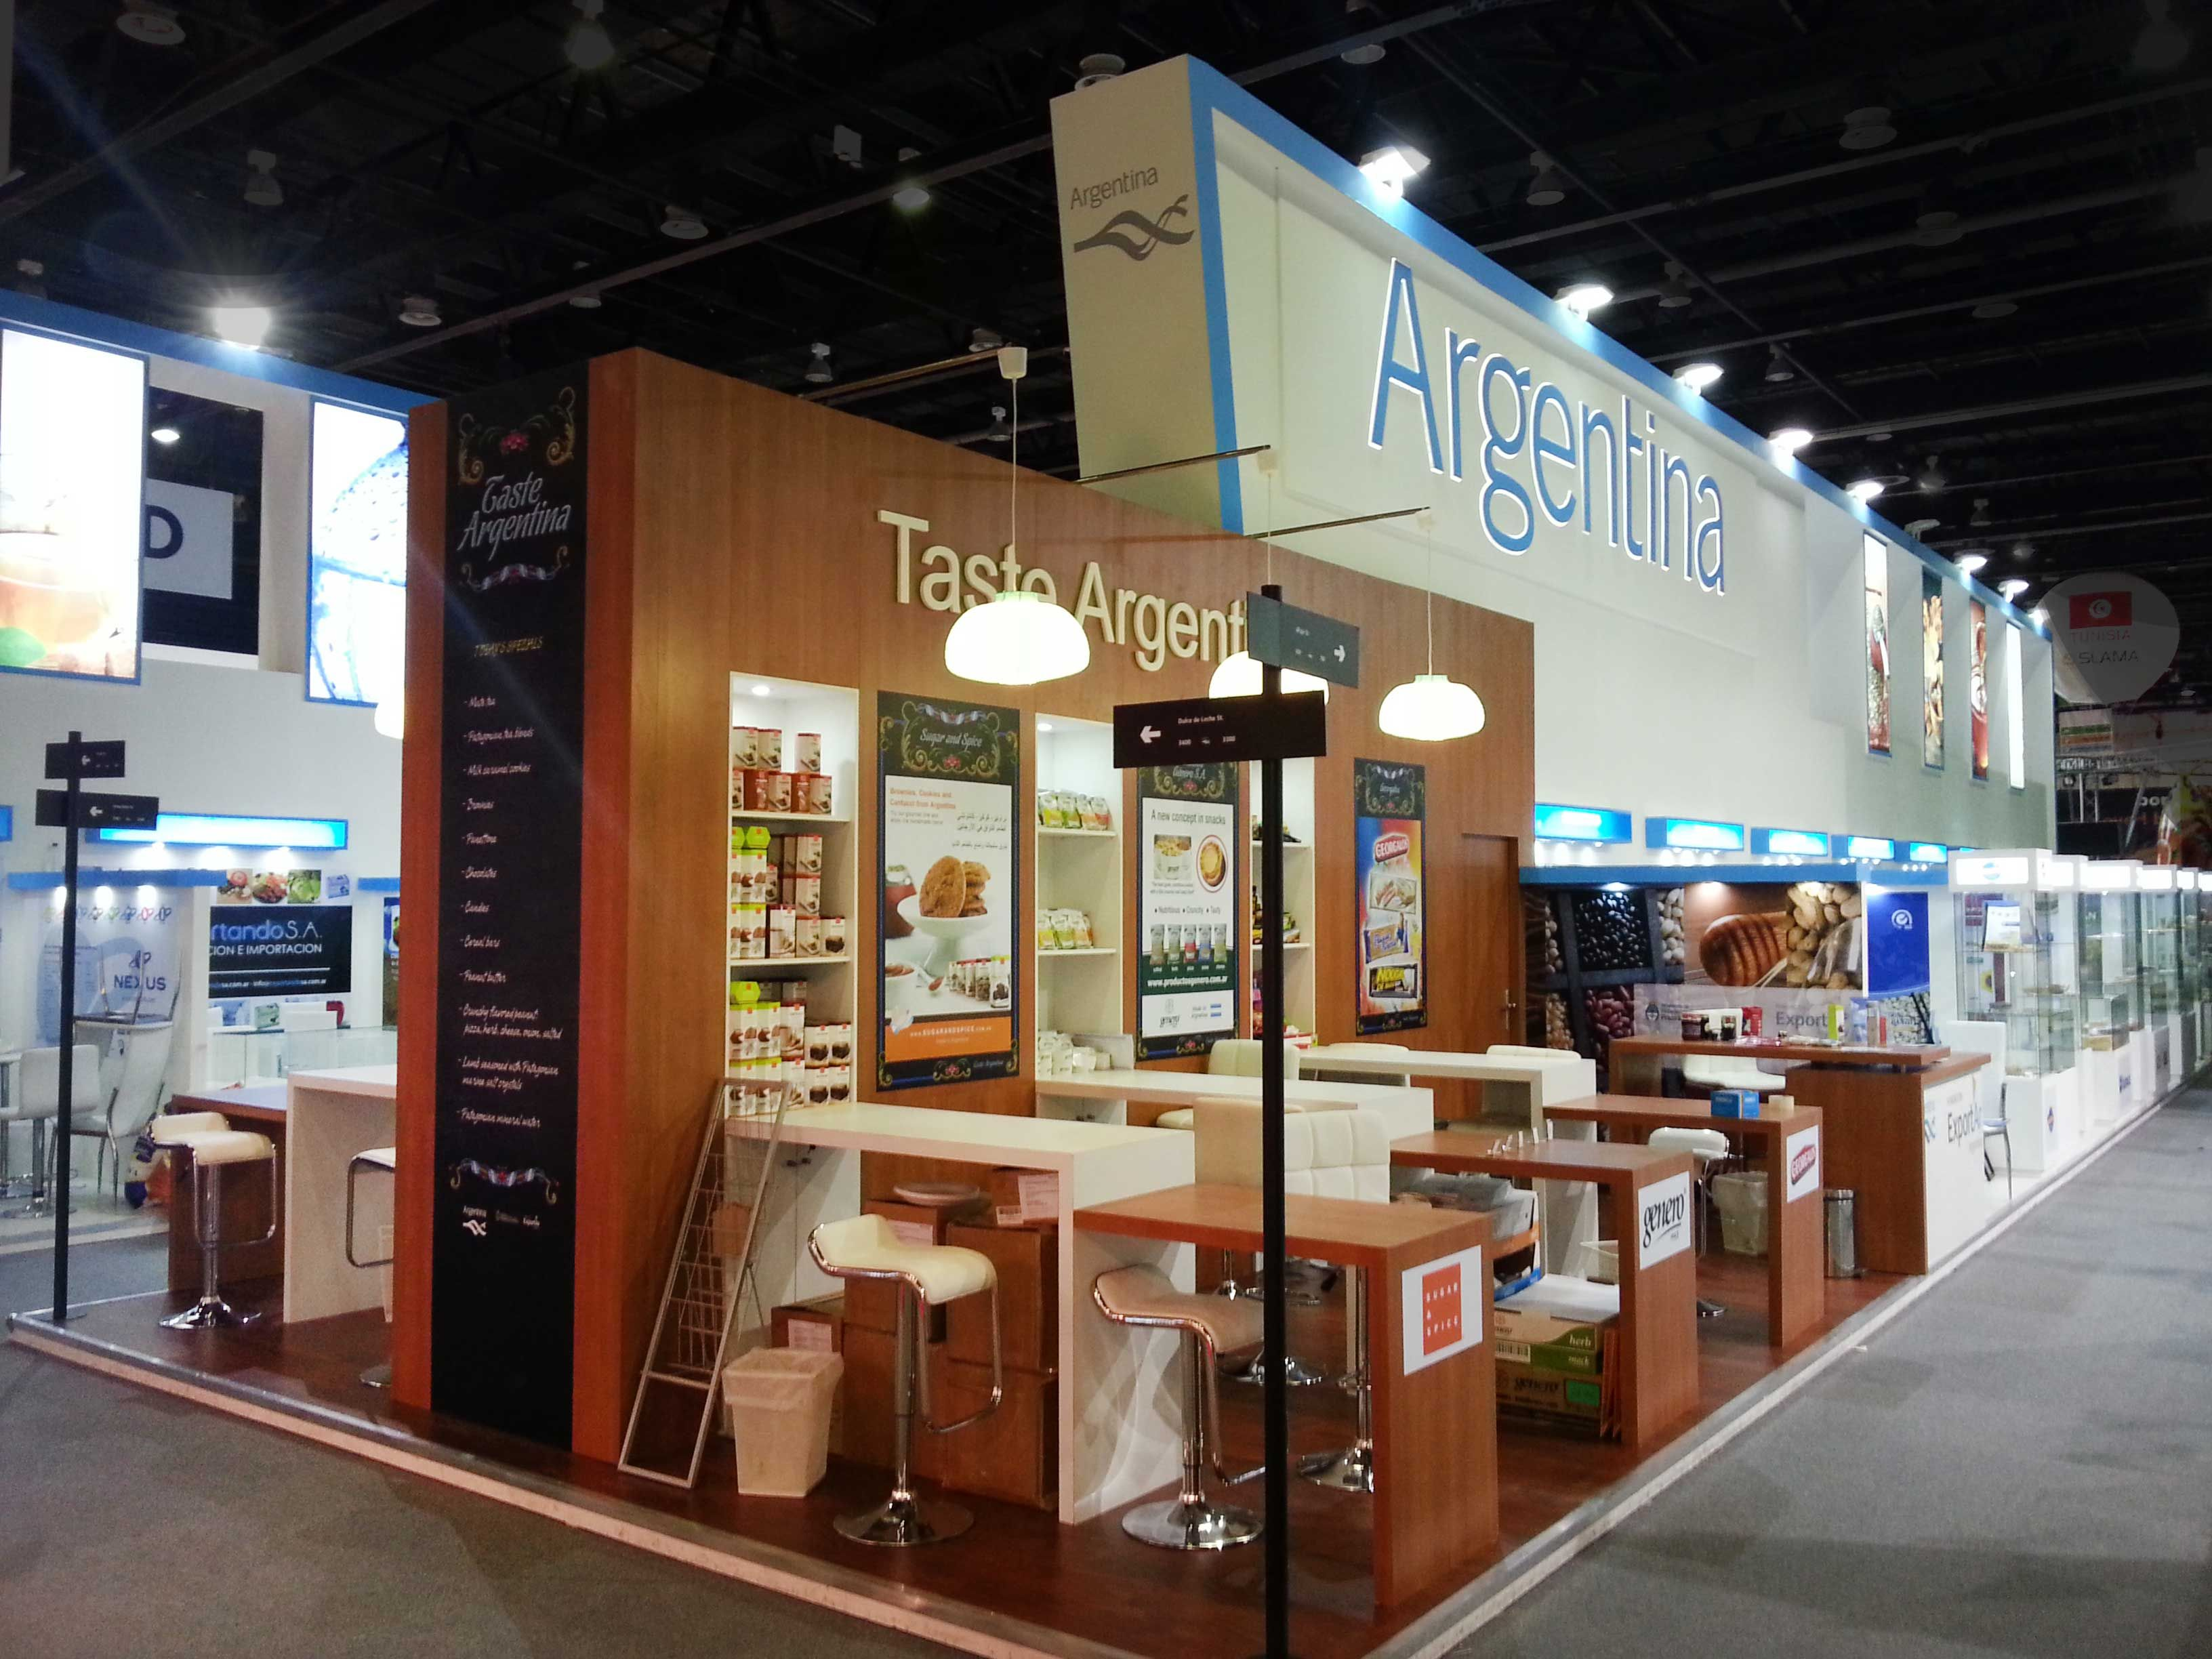 Gulfood 2013 Pabellón Argentino 320 Mts 2